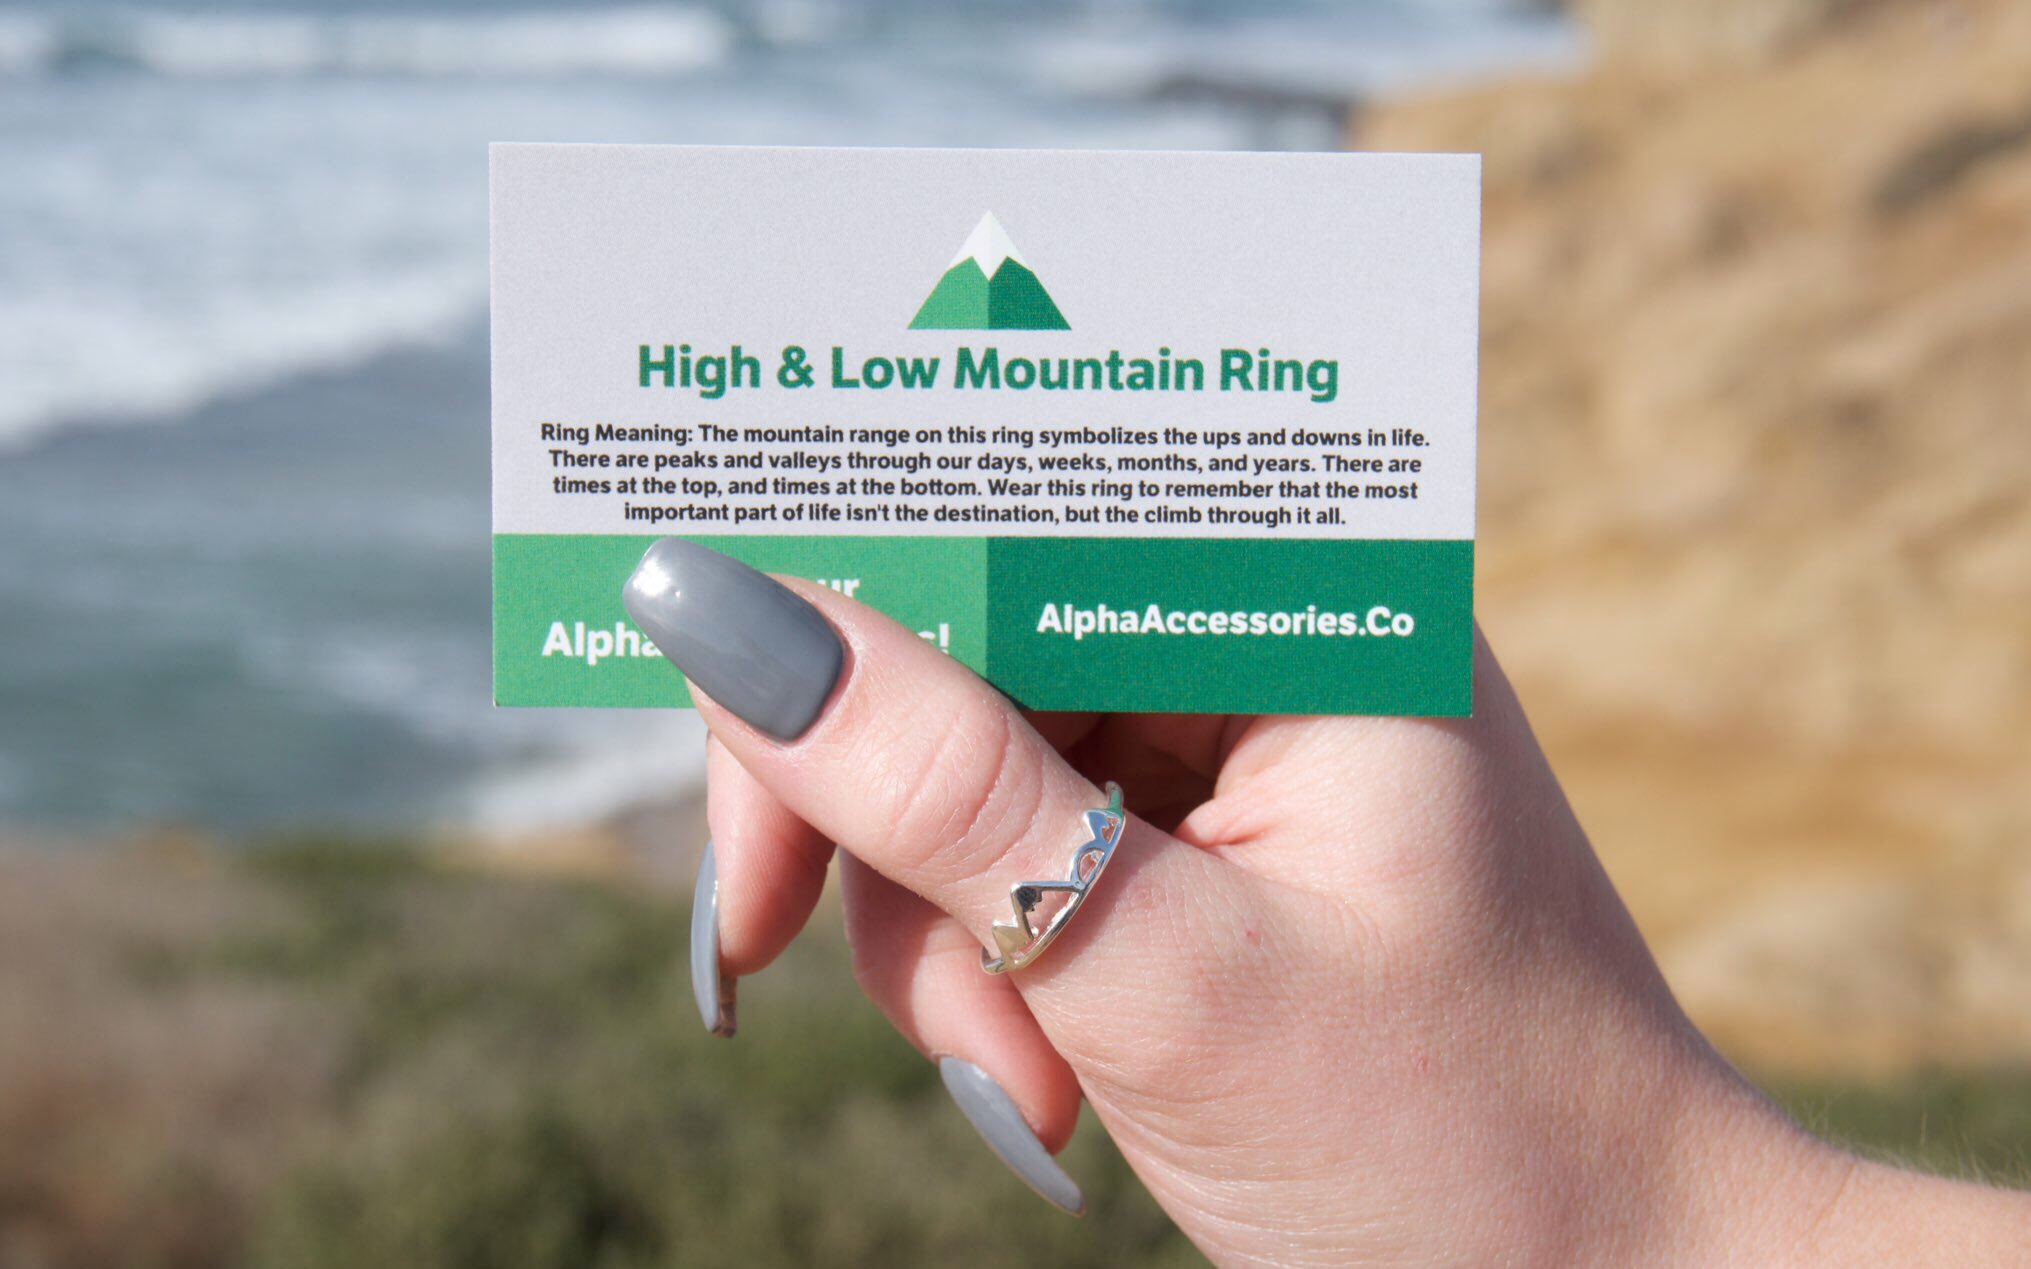 RT @BEFlTMOTlVATION: Neeed this high & low mountain ring from https://t.co/6QN7pgspDQ https://t.co/EWxfeovPwg